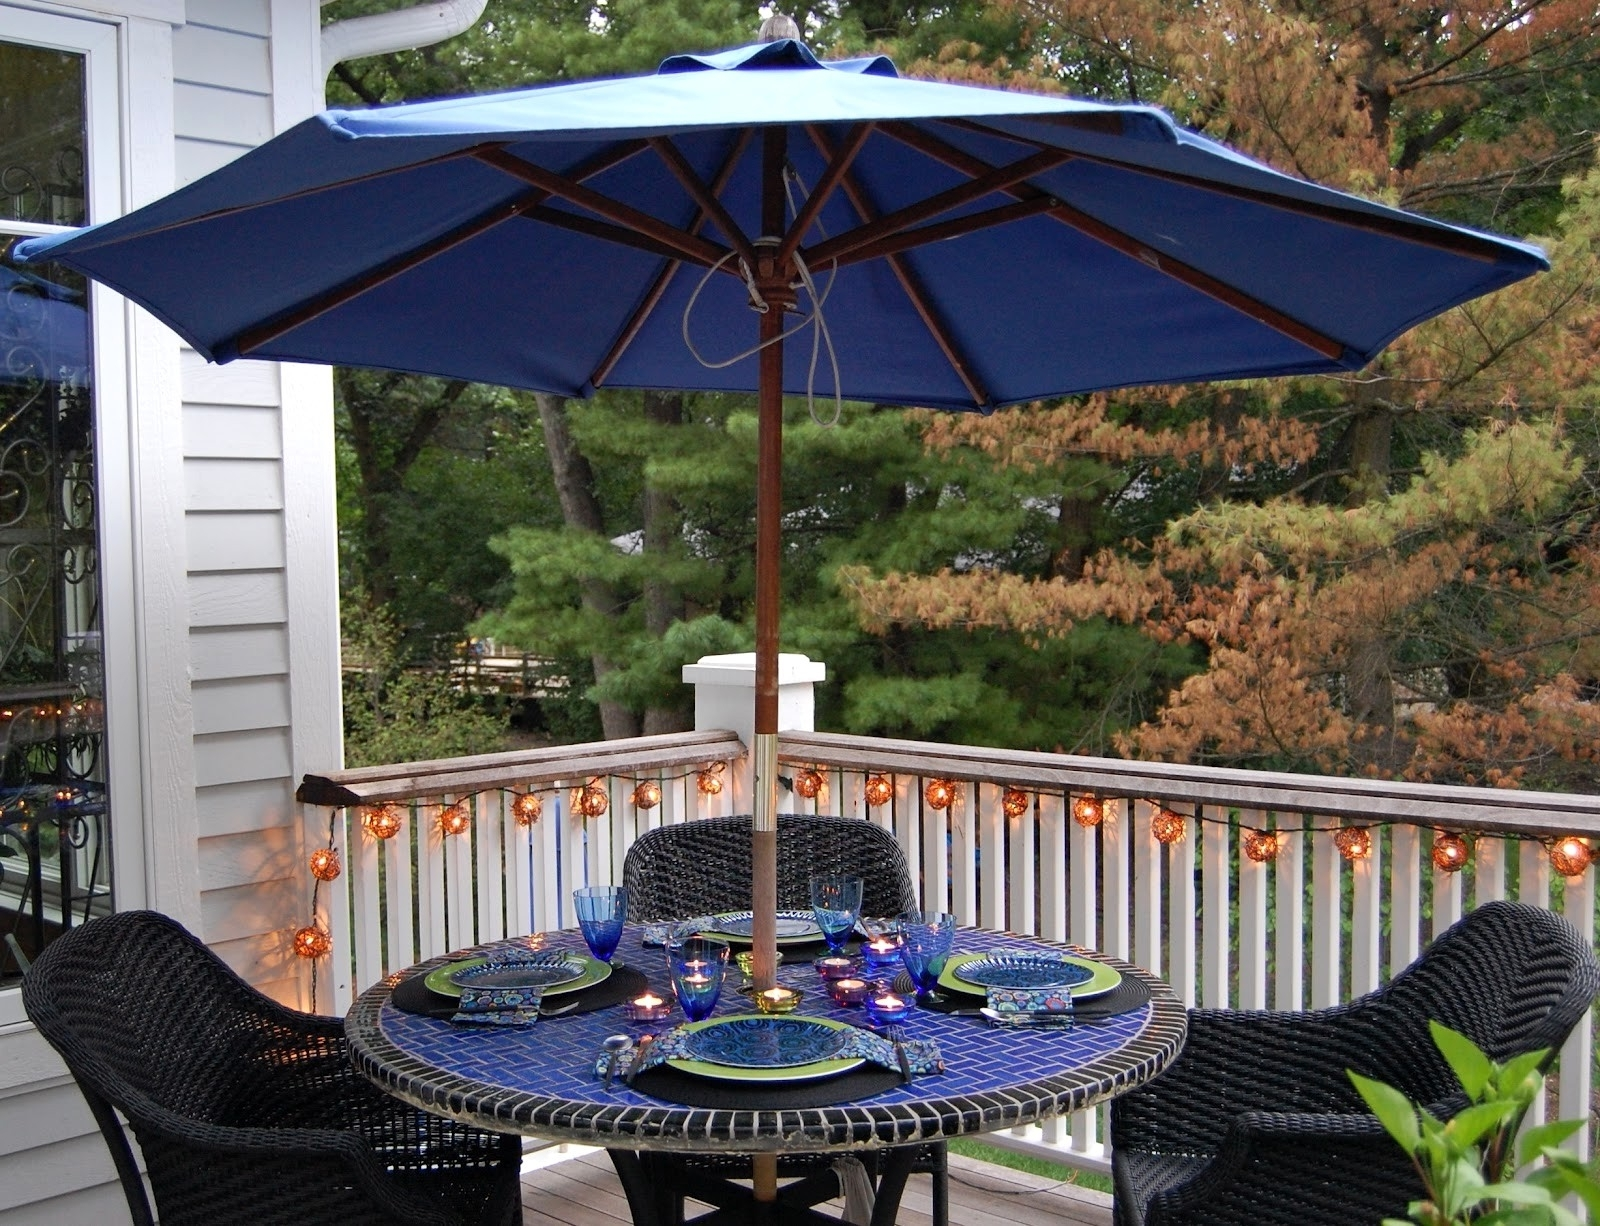 Patio Sets With Umbrellas With Widely Used Outdoor Patio Furniture Sets With Umbrella Enjoy Your Summer Time (View 17 of 20)